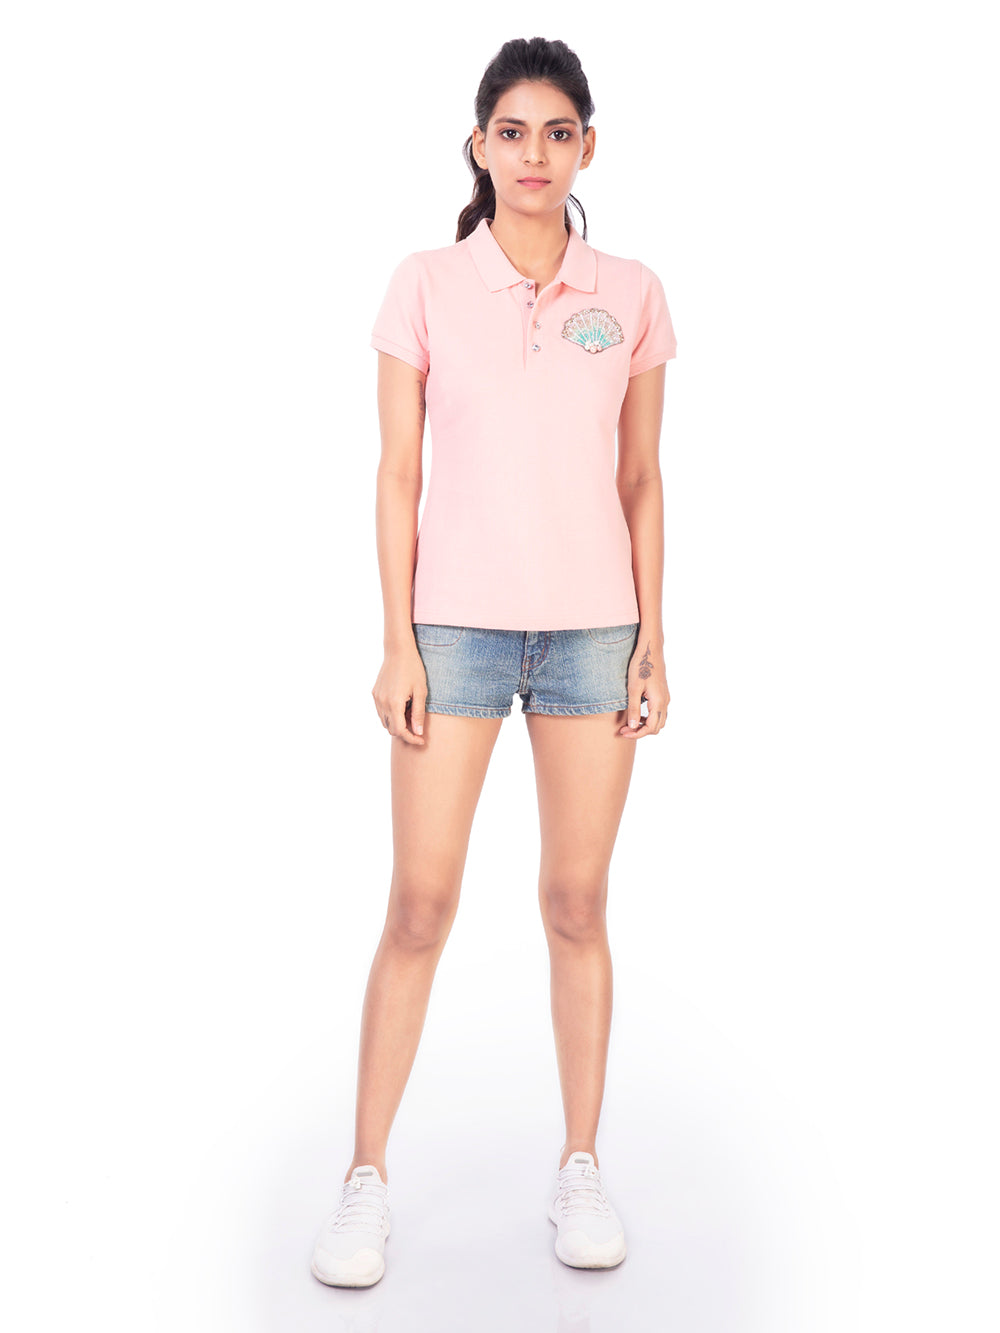 POLO T-SHIRT WITH SHELL MOTIF